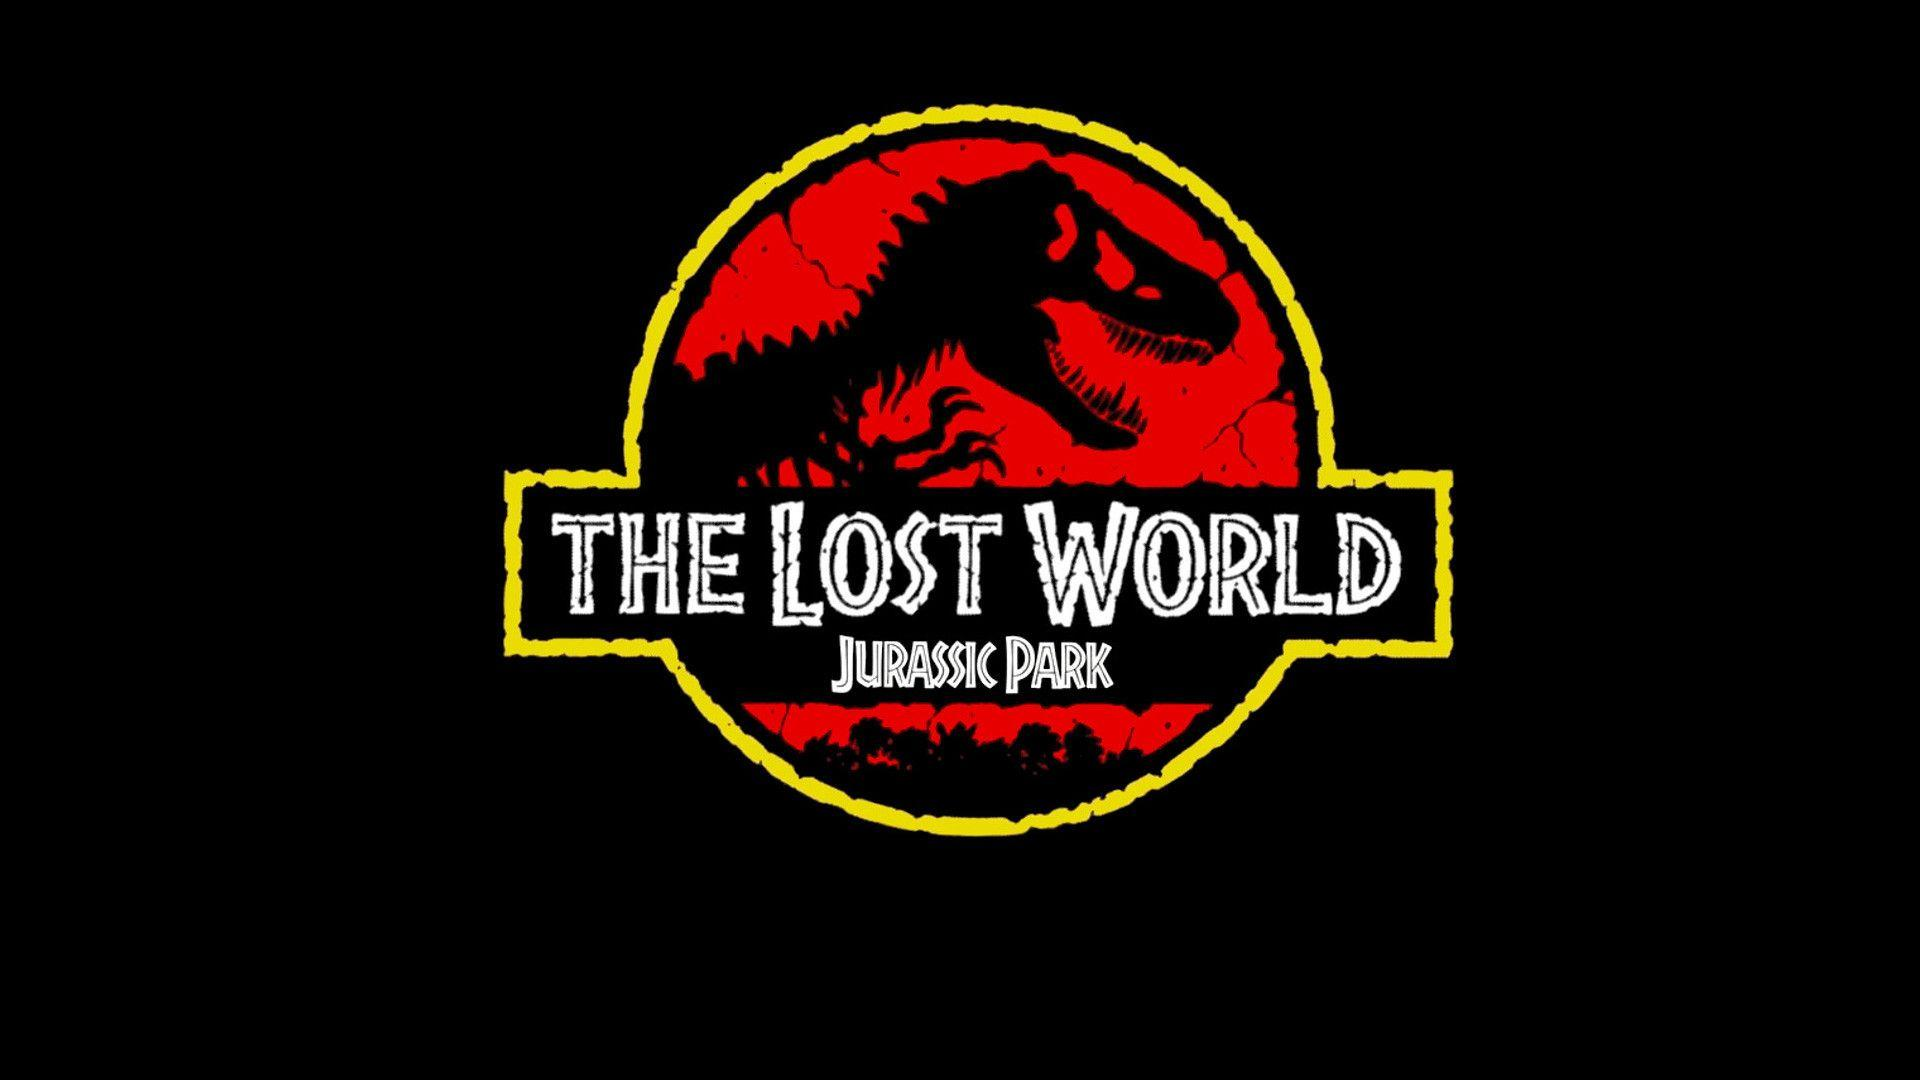 The Lost World Jurassic Park Wallpapers Wallpaper Cave